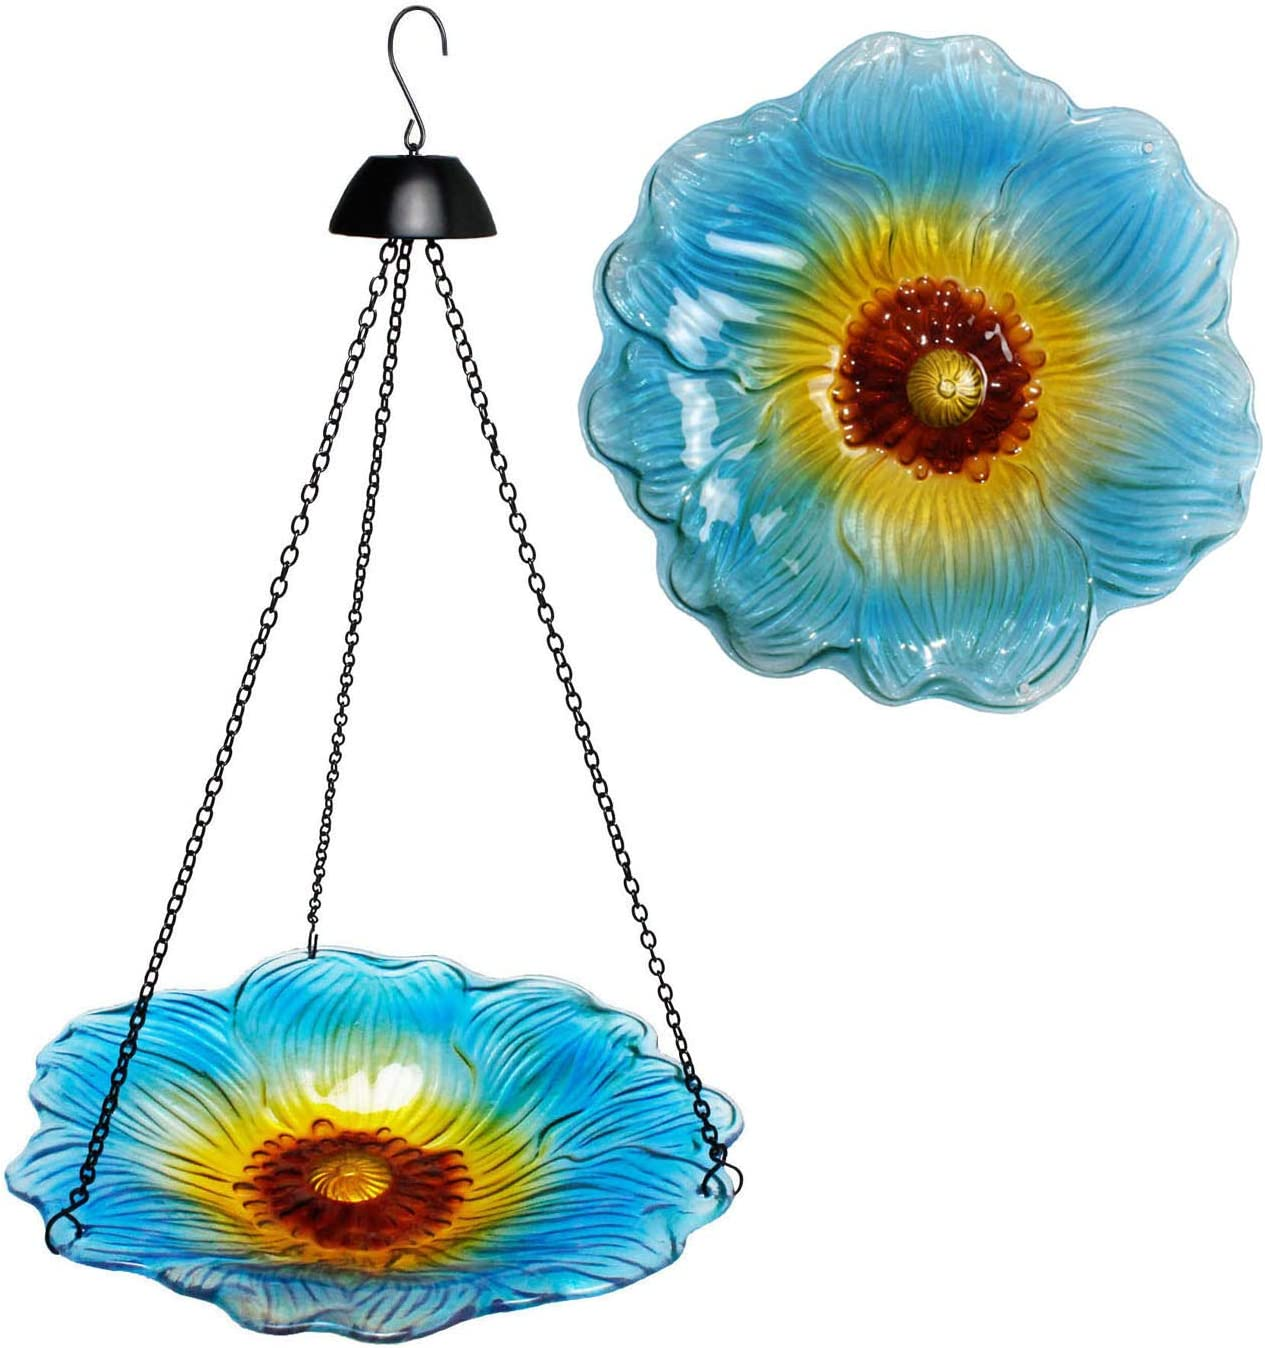 Jayzod Glass Bird Bath 12 Inch Hanging Birdbaths for Outdoor Garden Decoration 100% Hand Painted Birdbath Blue Flower Pattern